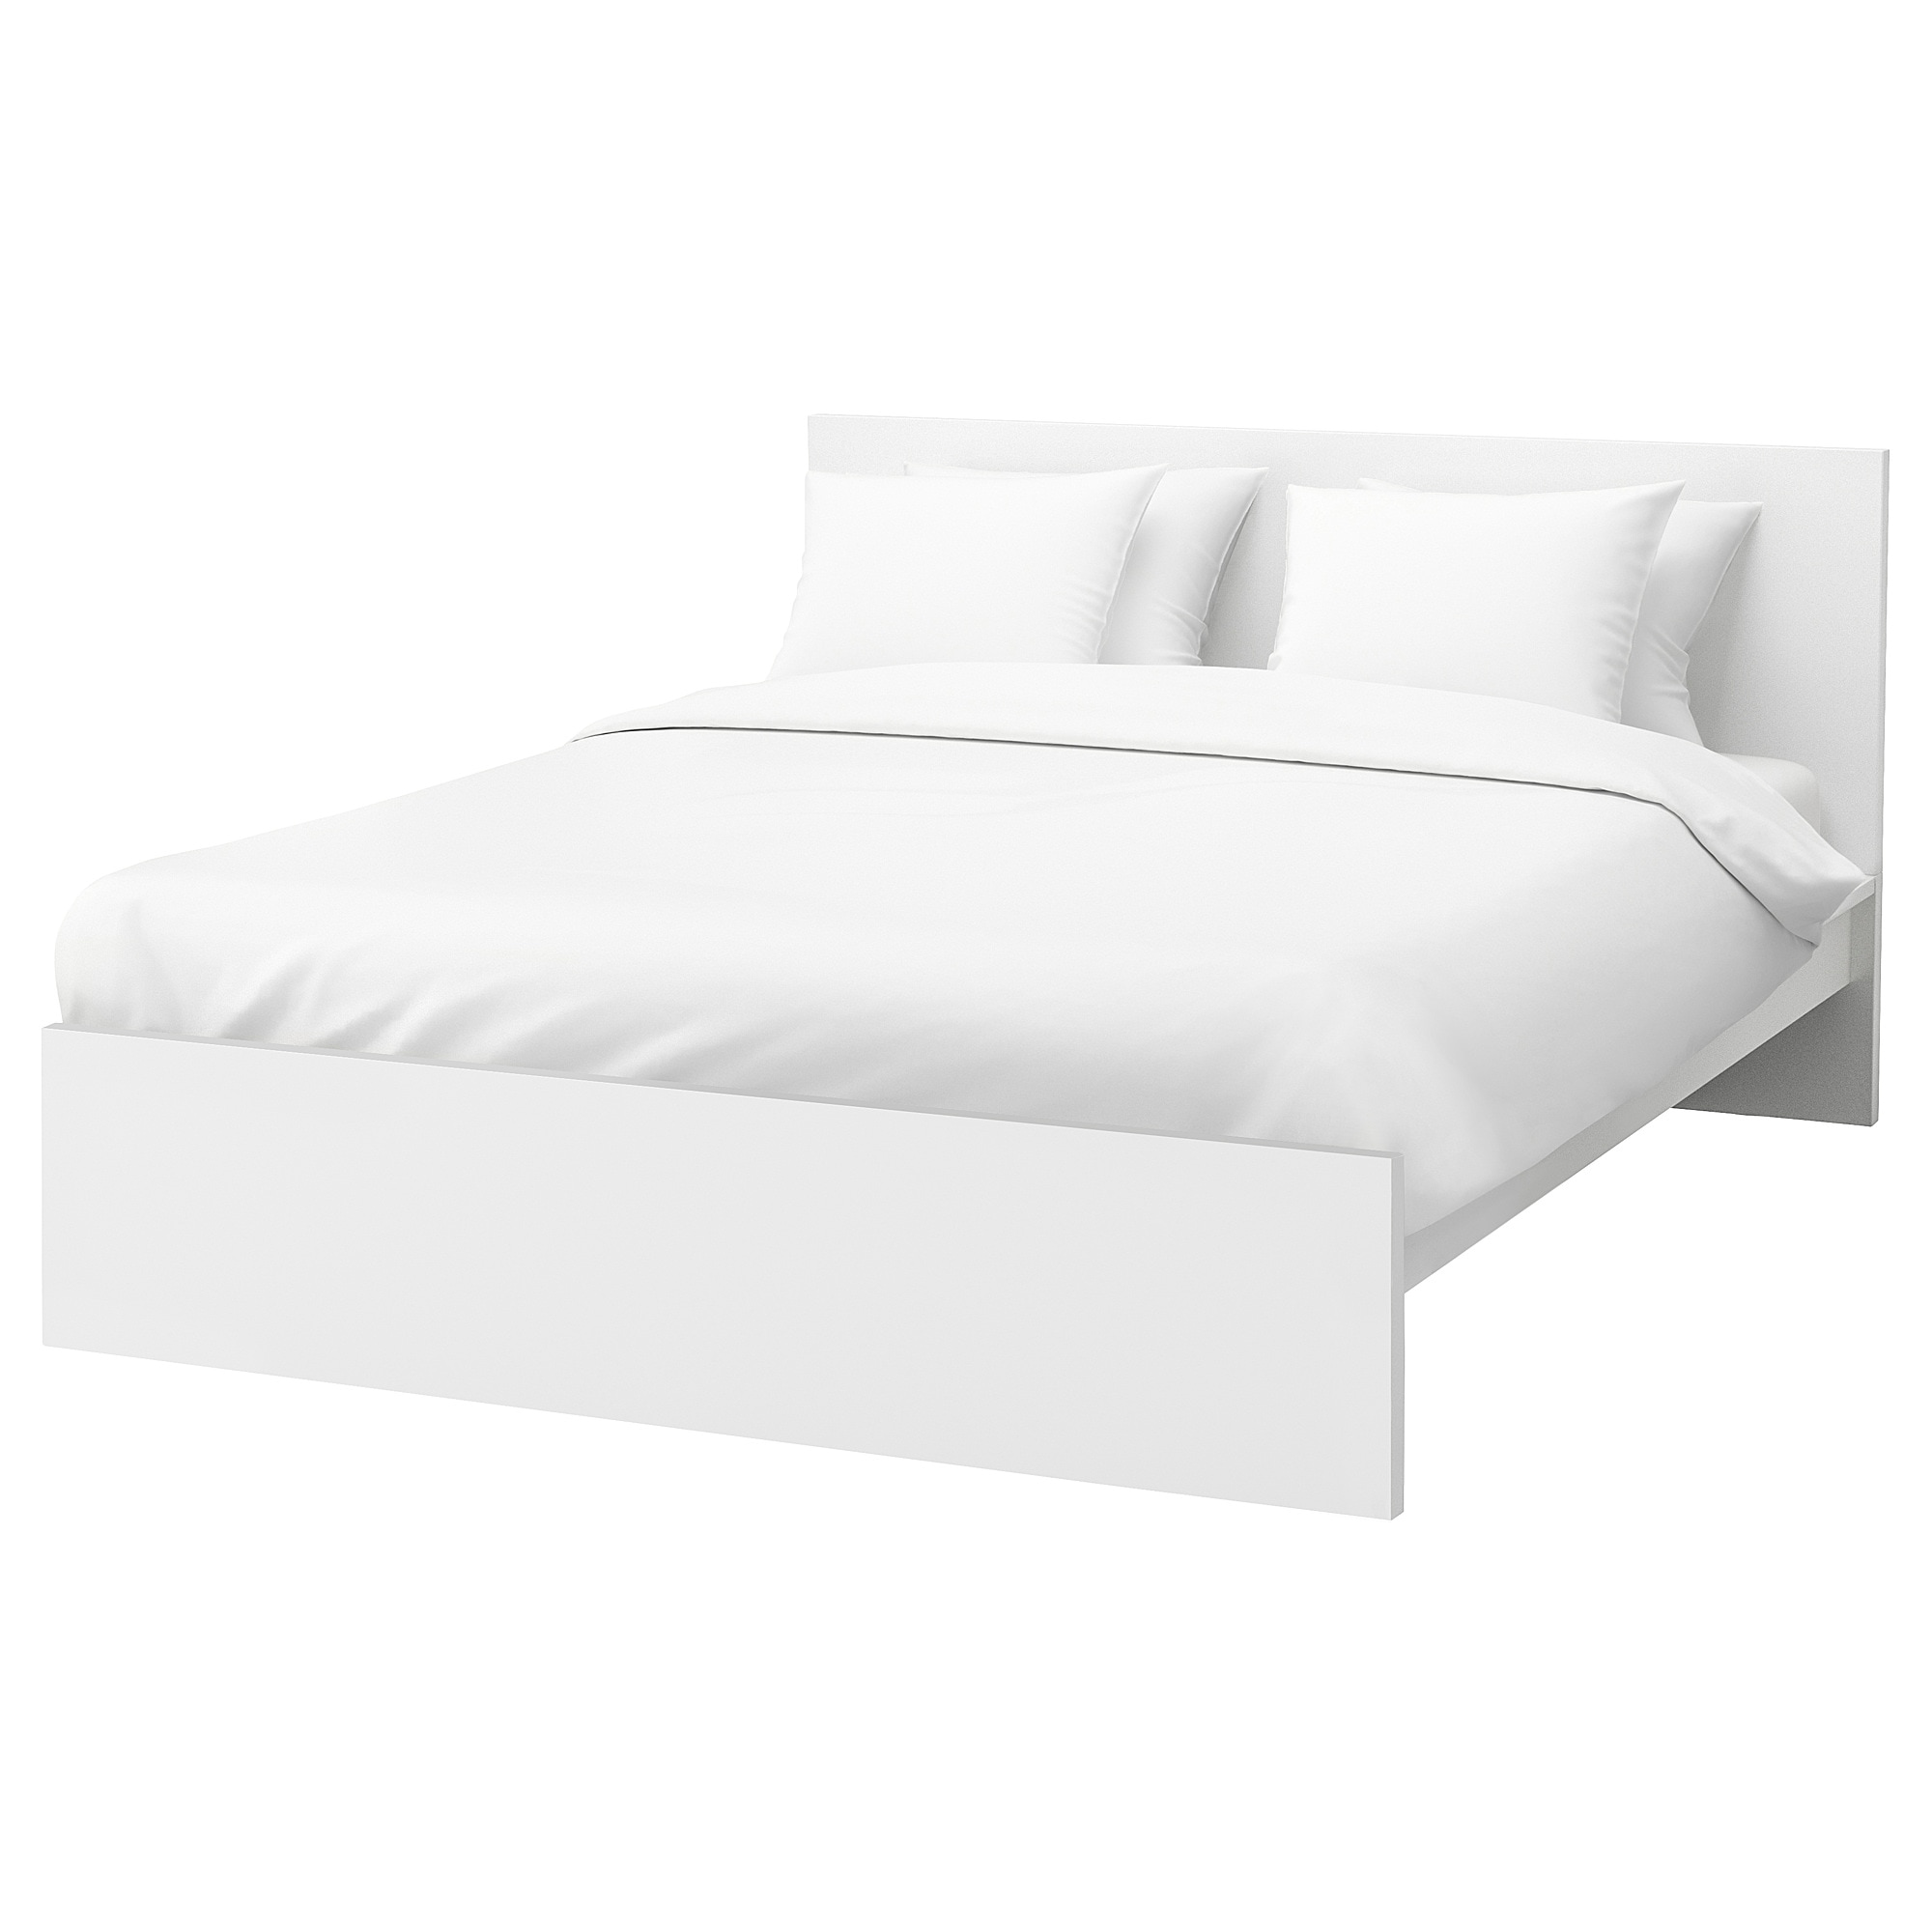 lovely Ikea Malm Bed Table Part - 10: IKEA MALM Bed frame, high